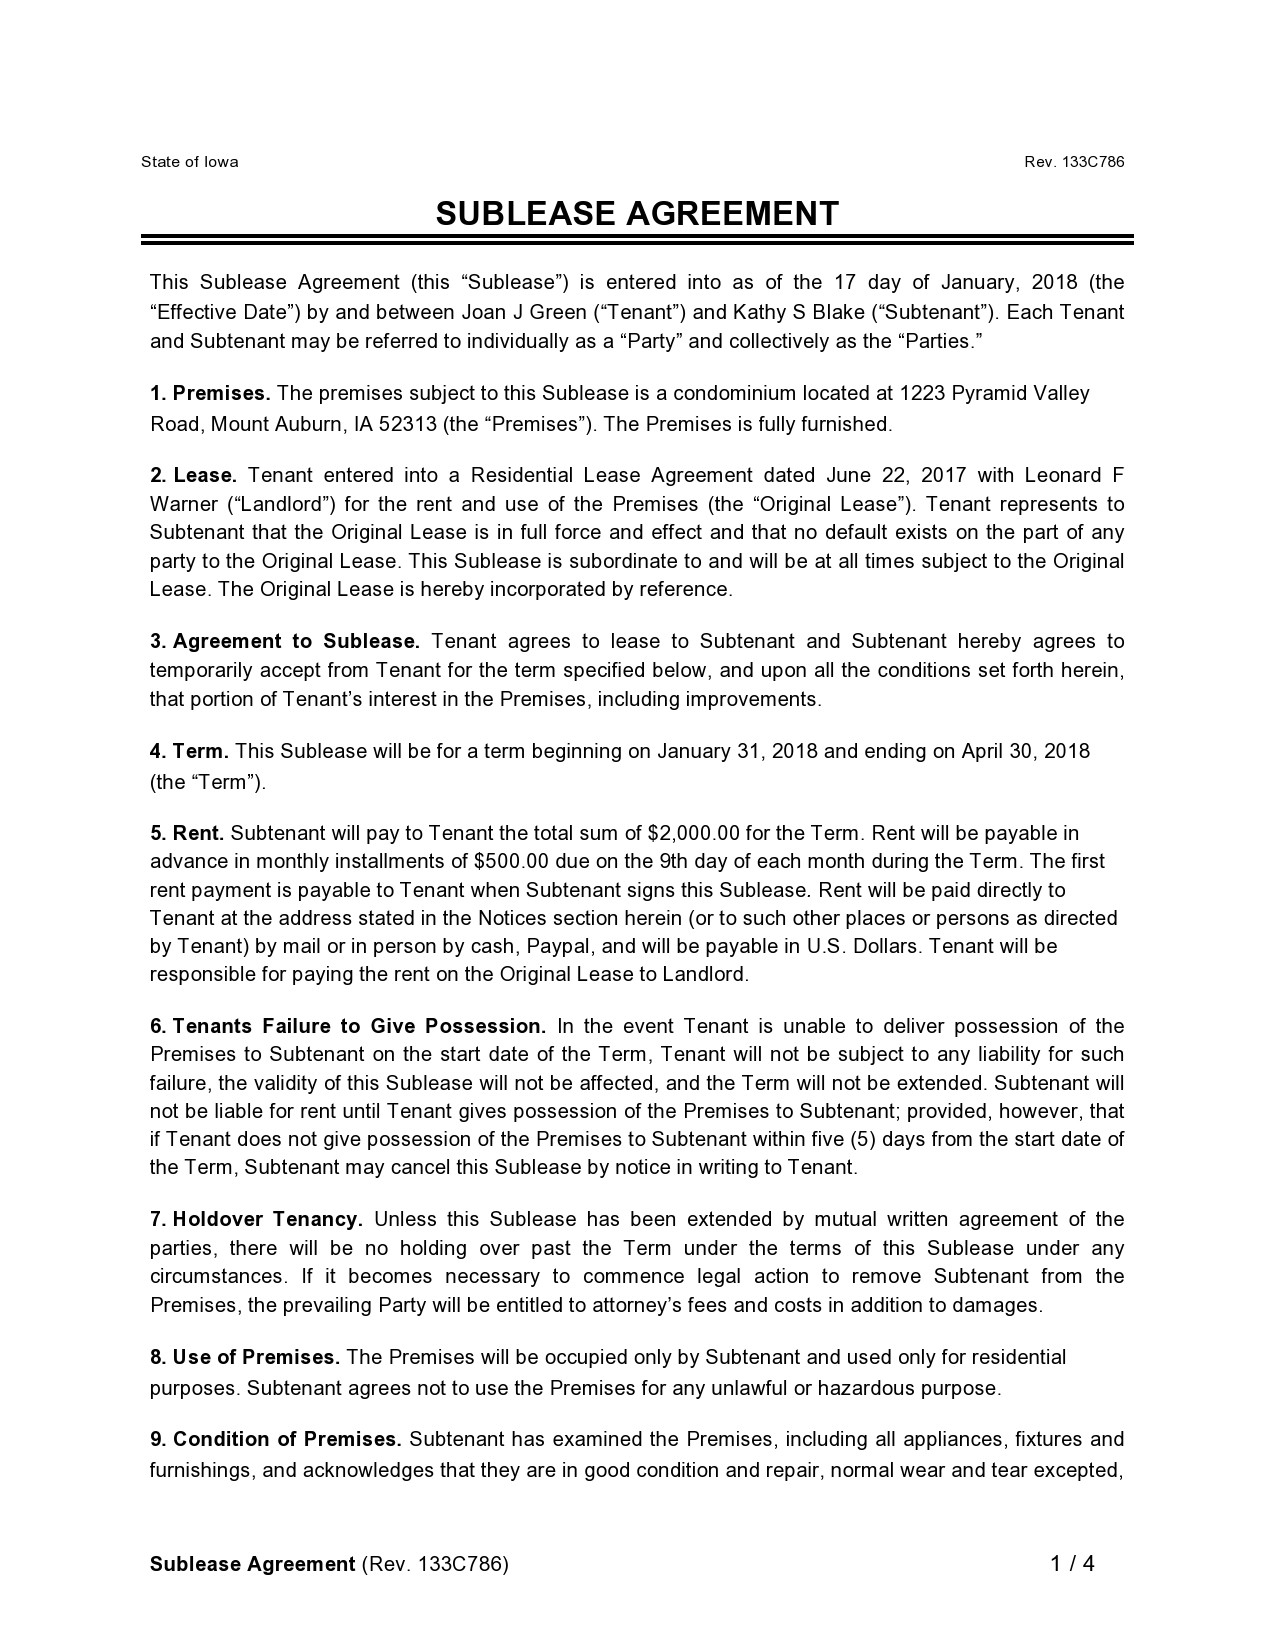 Free residential sublease agreement 34